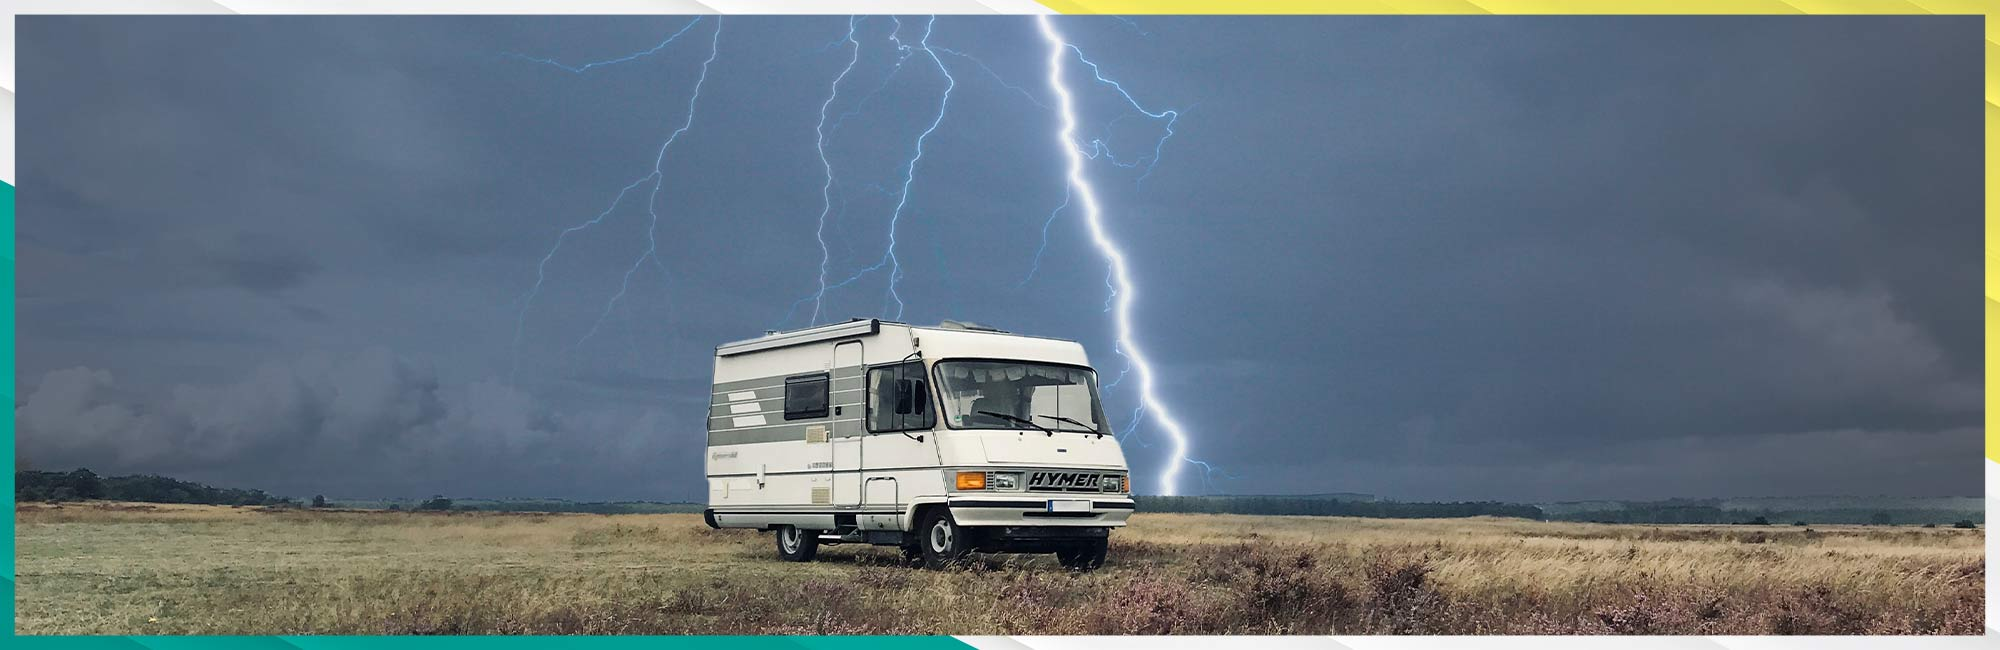 RV storm safety tips